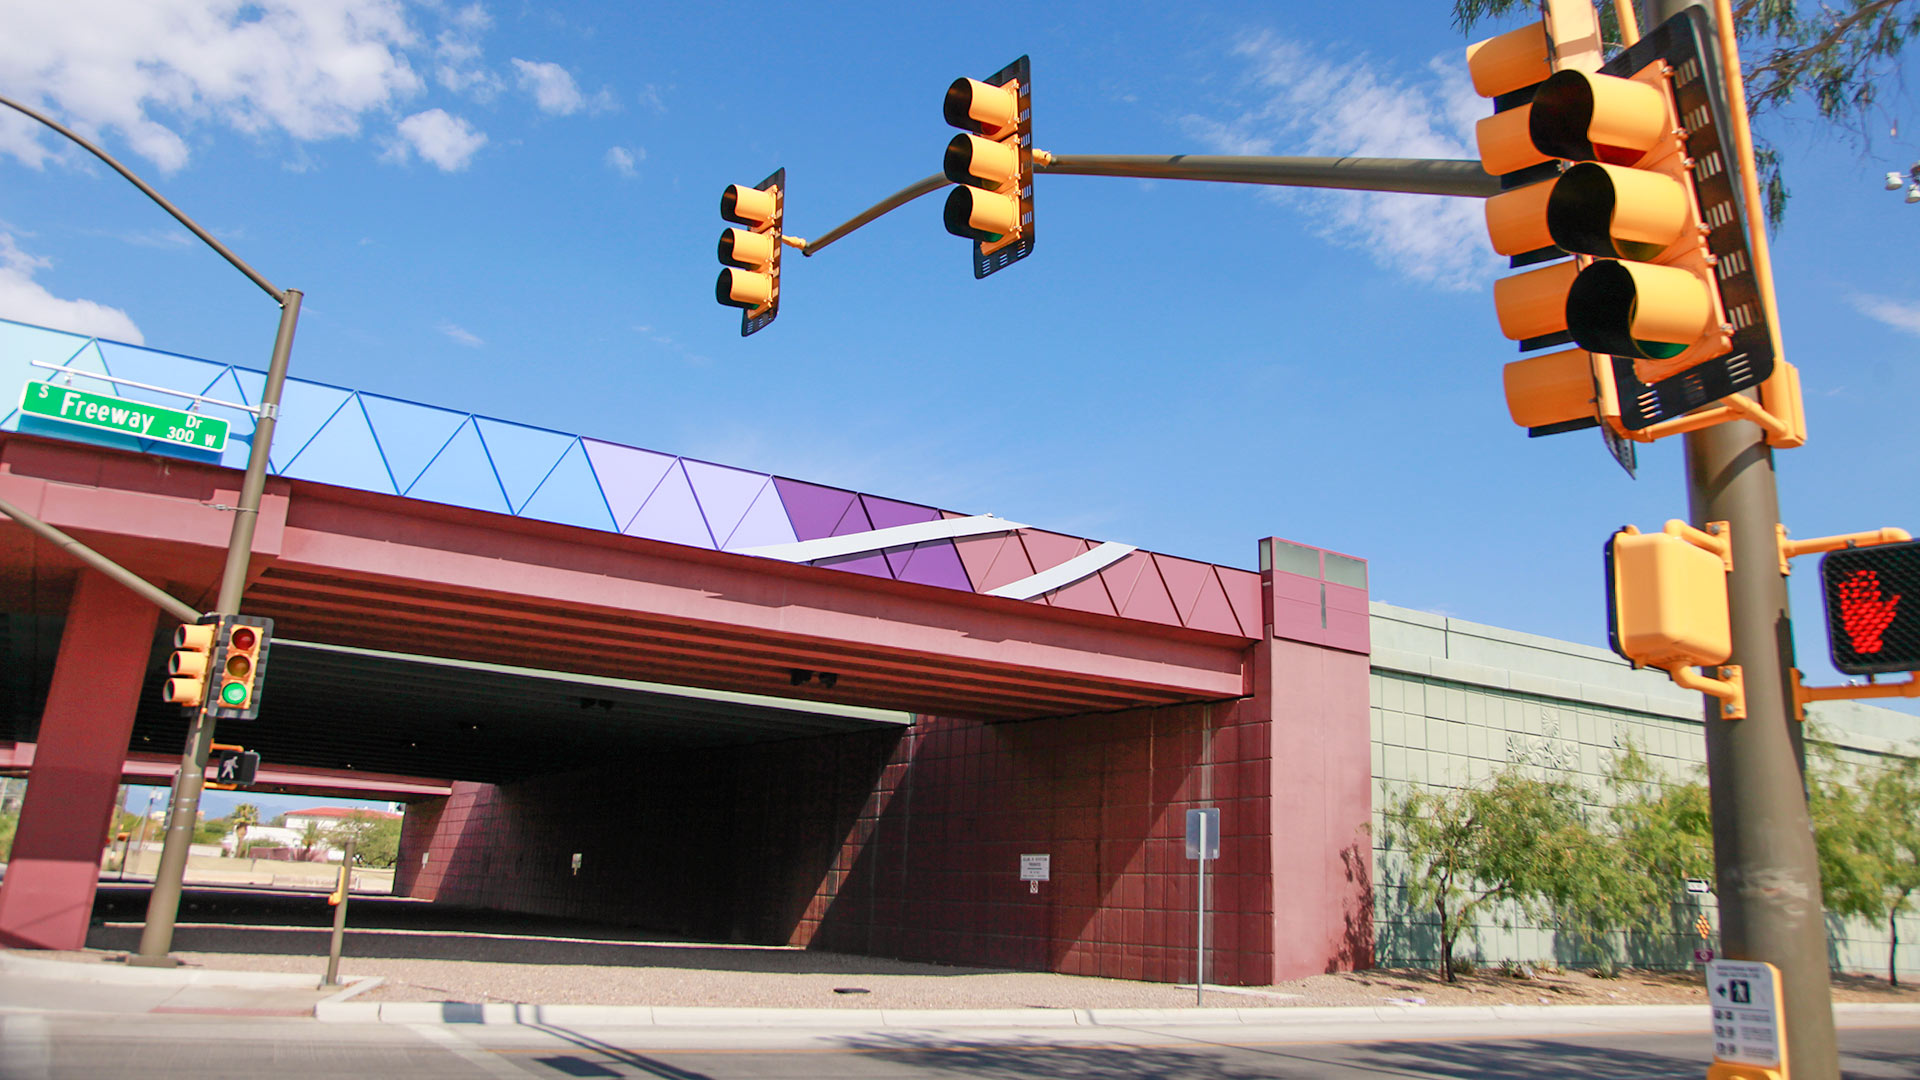 The proposed site of a skate park is at the I-10 underpass at Cushing and Freeway.